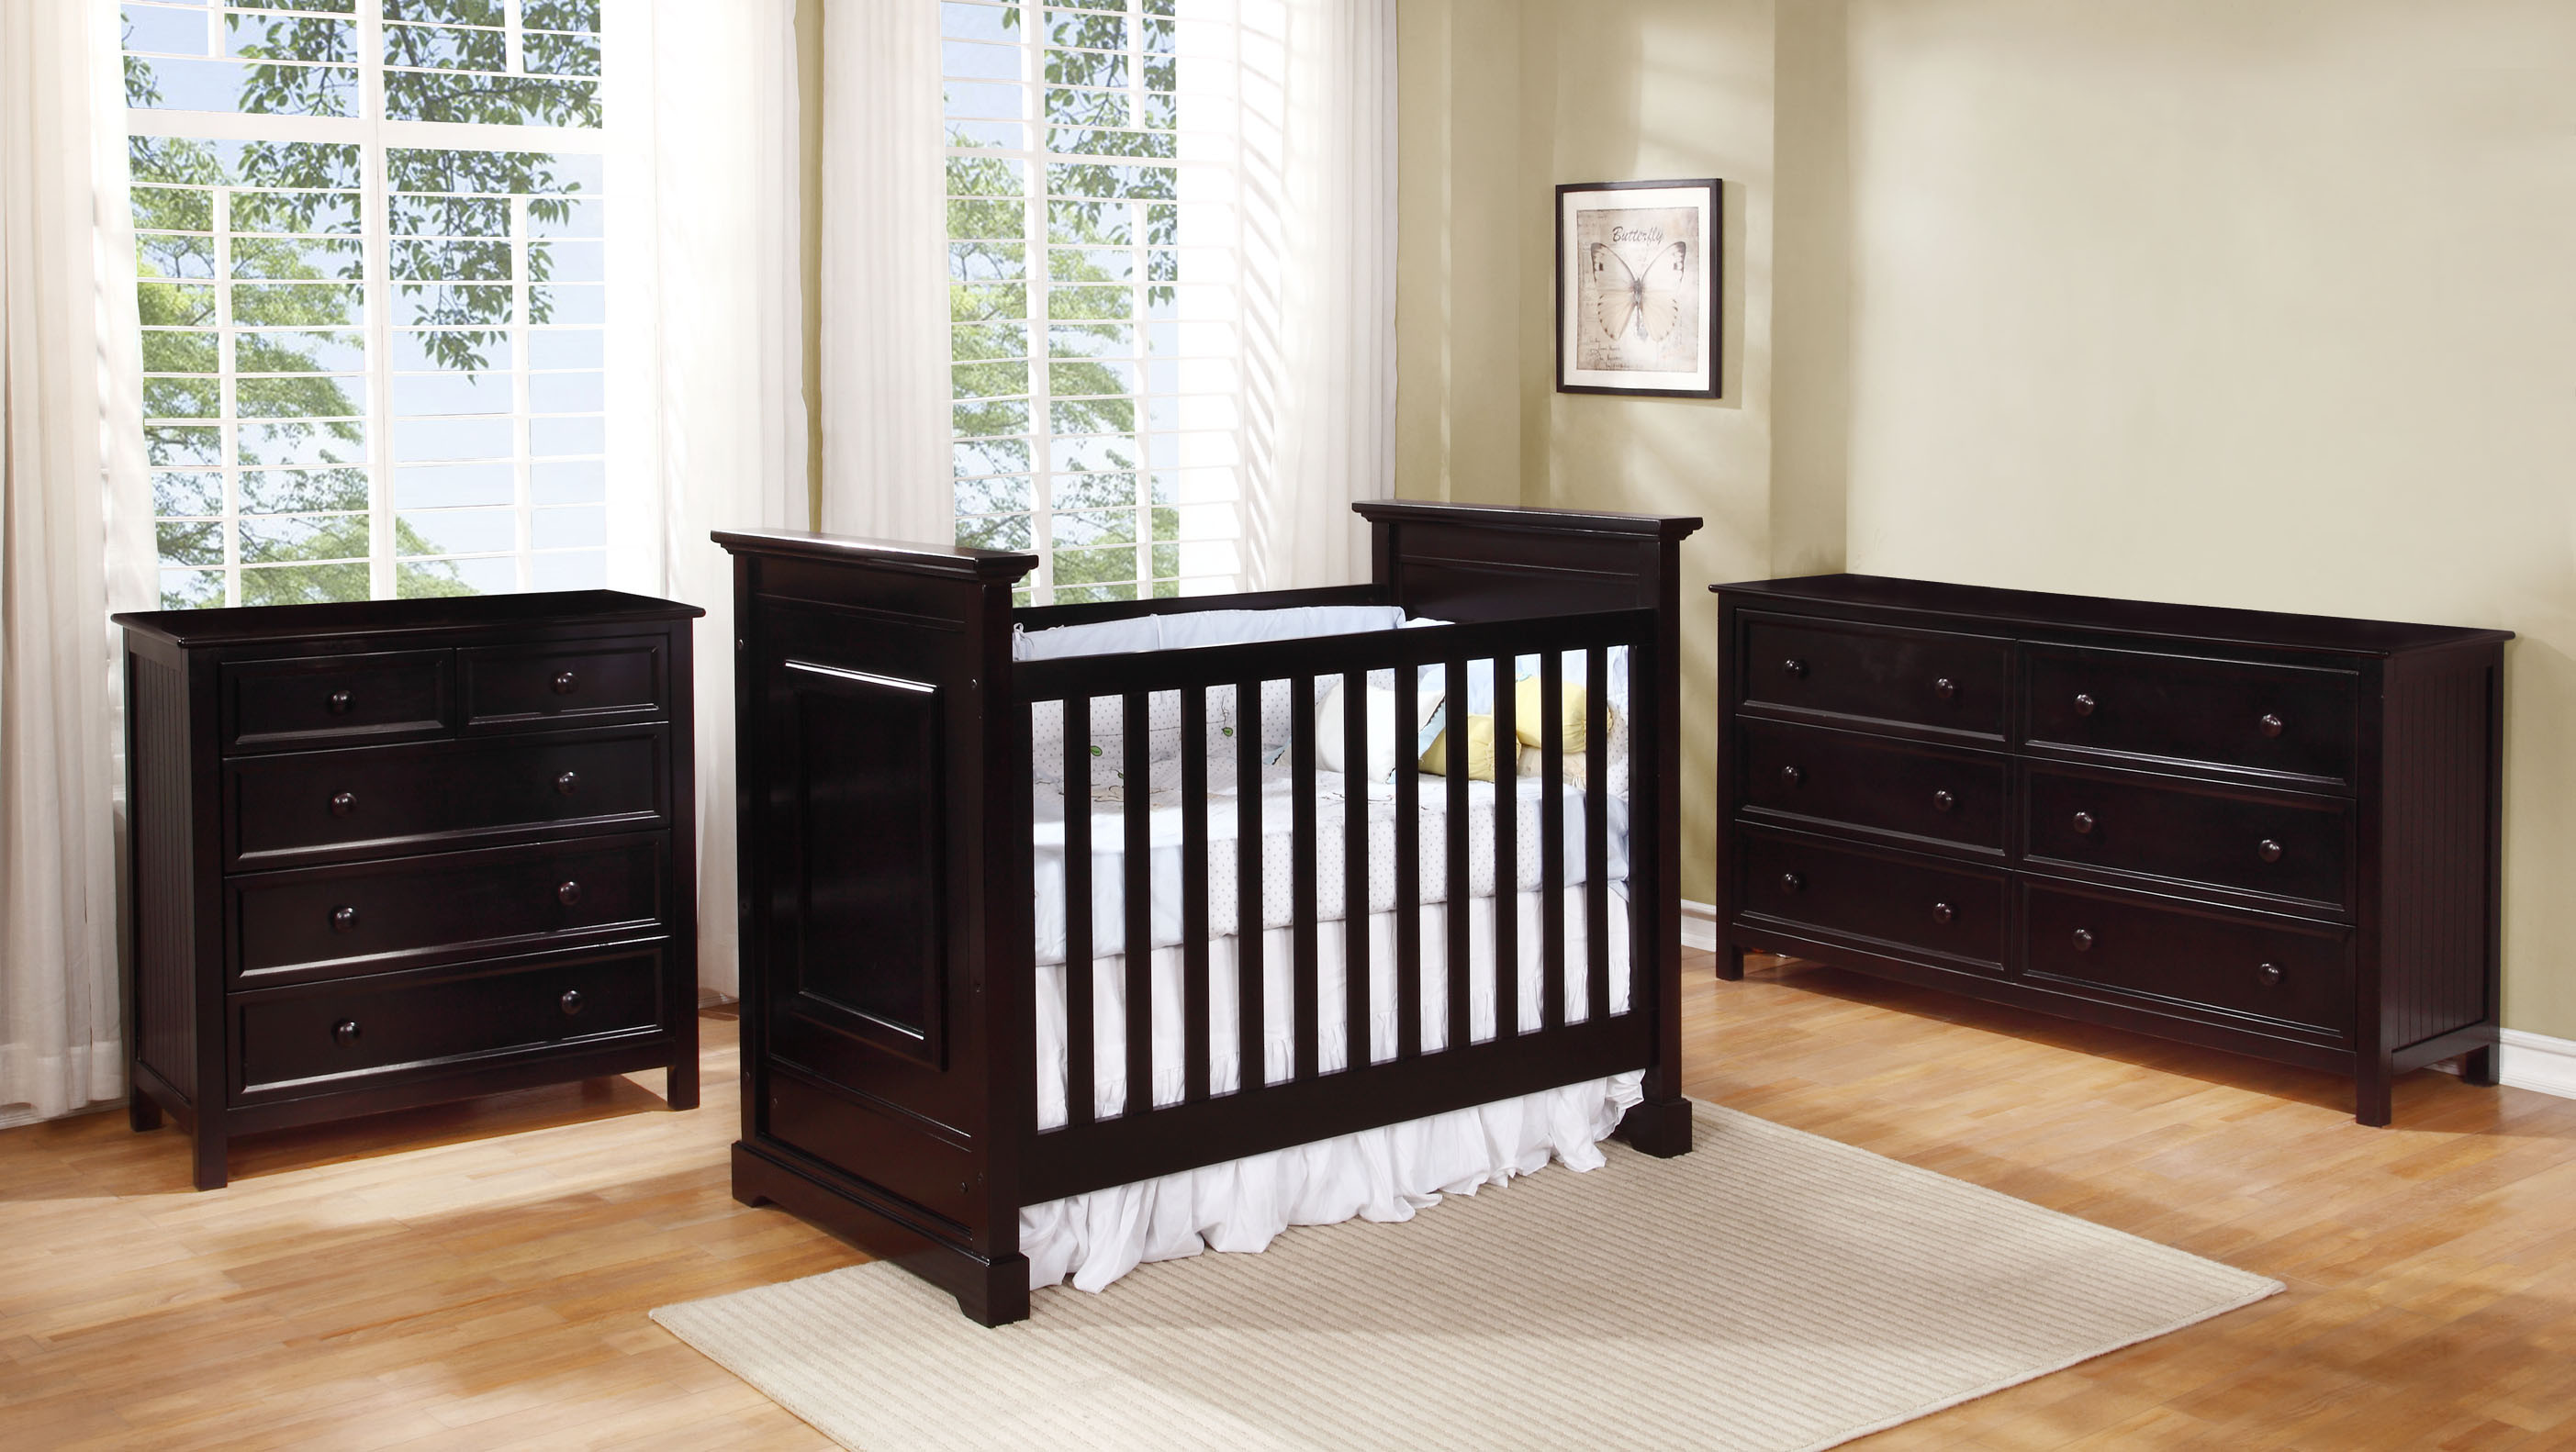 Waterford Classic Crib with Summerlin Collection Espresso